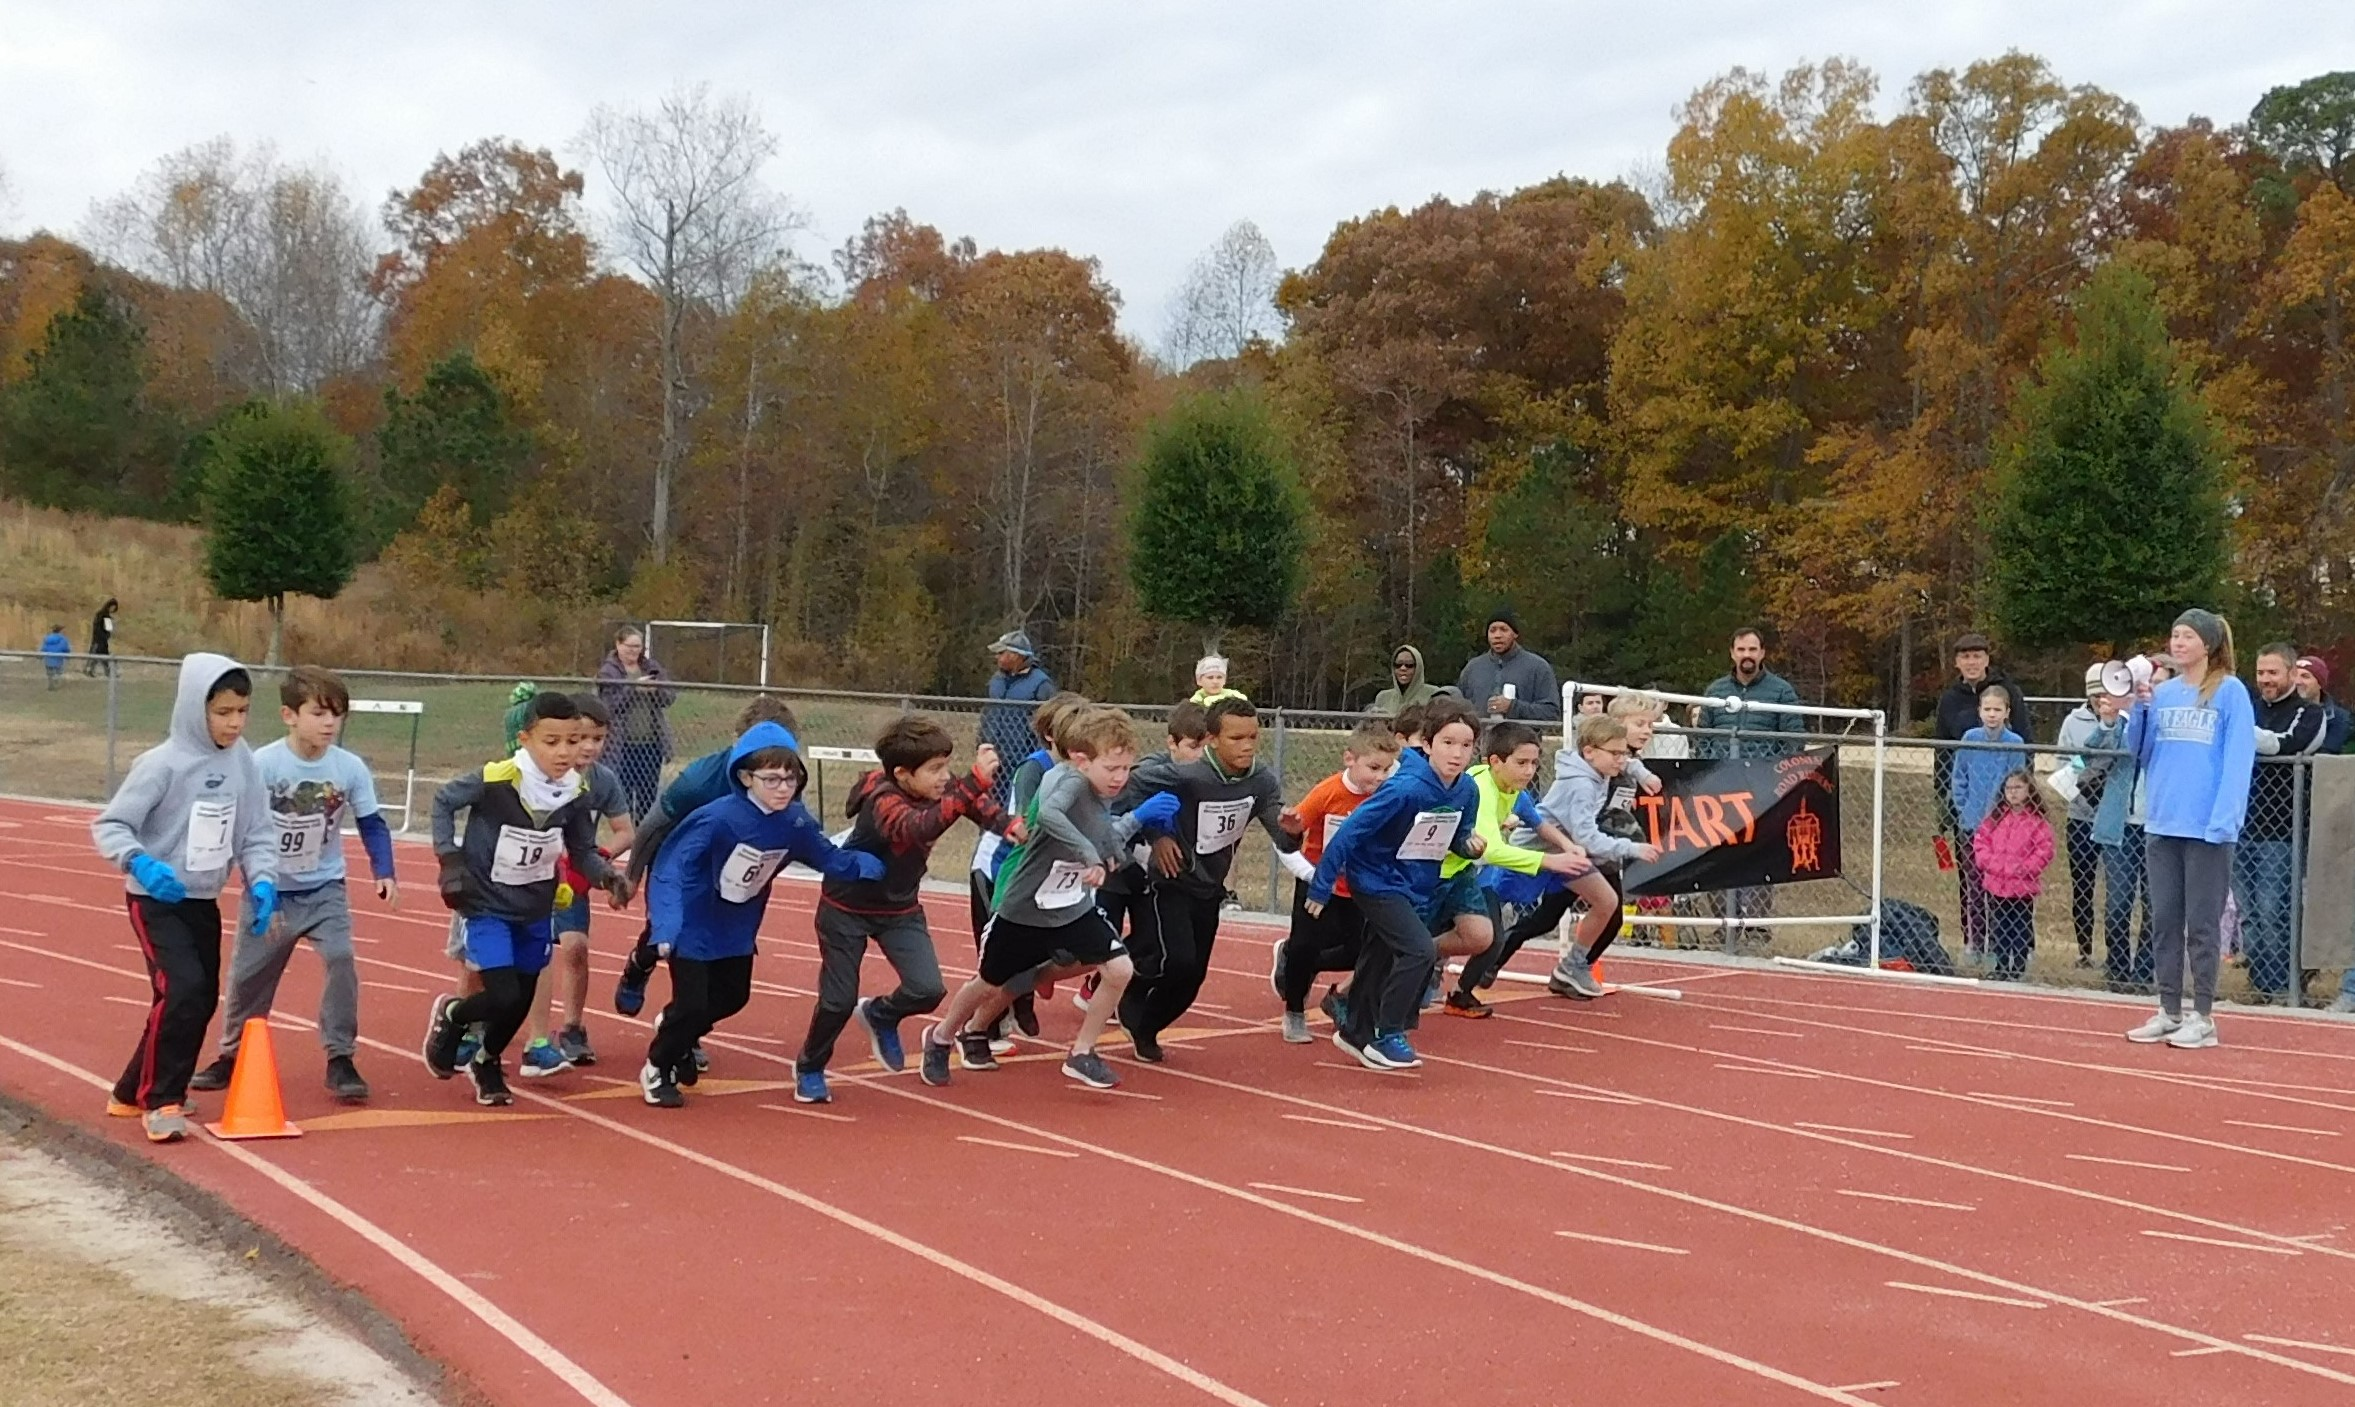 3rd and 4th grade boys starting off on their 1 mile run